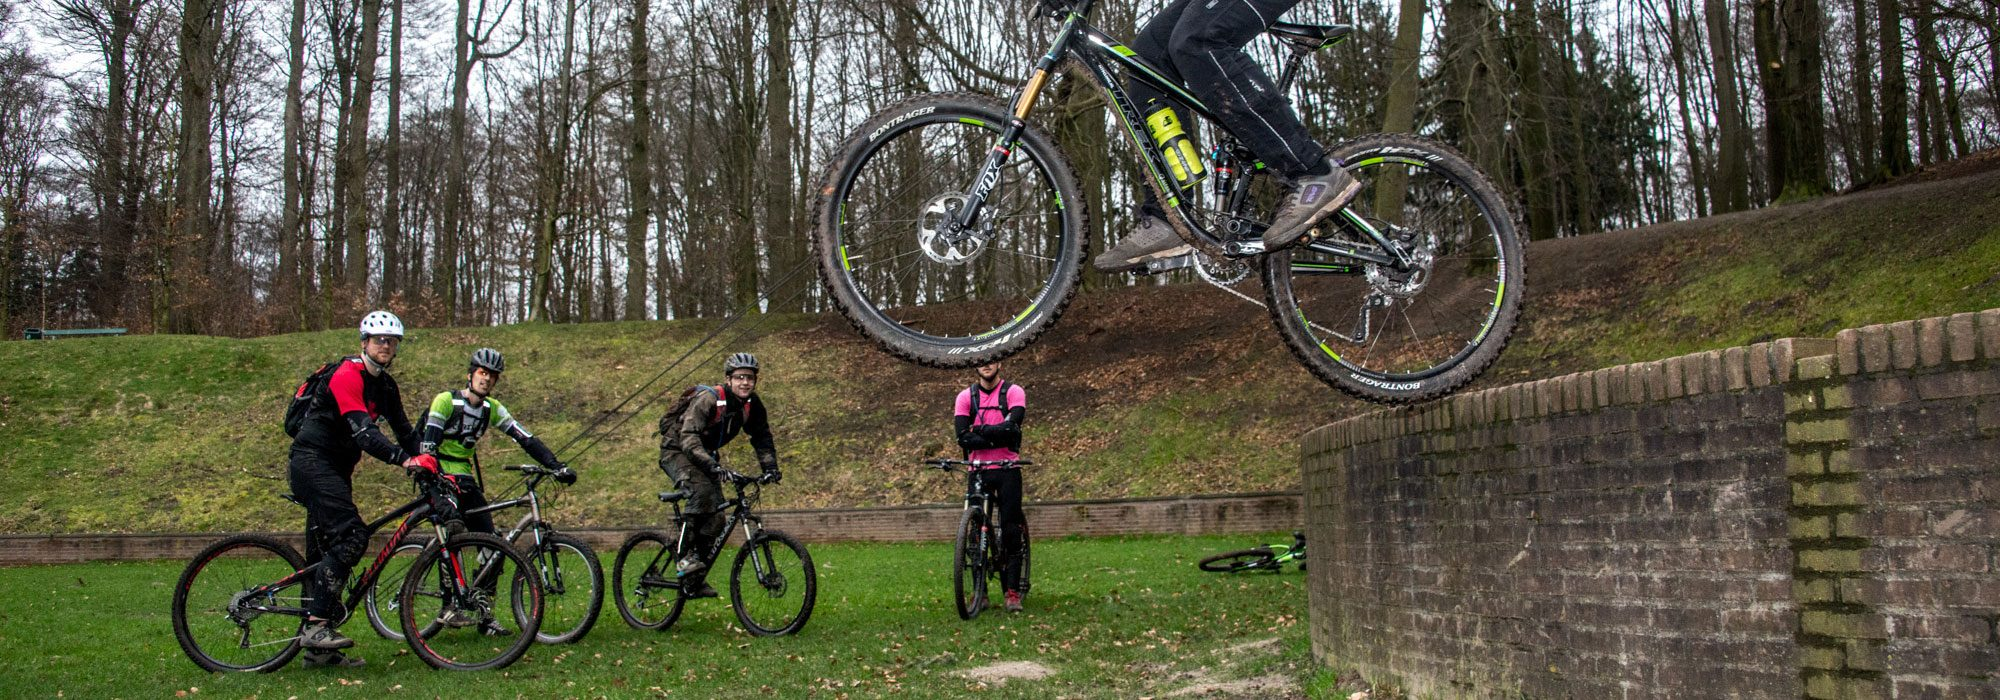 mtbclinic.nl mountainbike clinics freeride